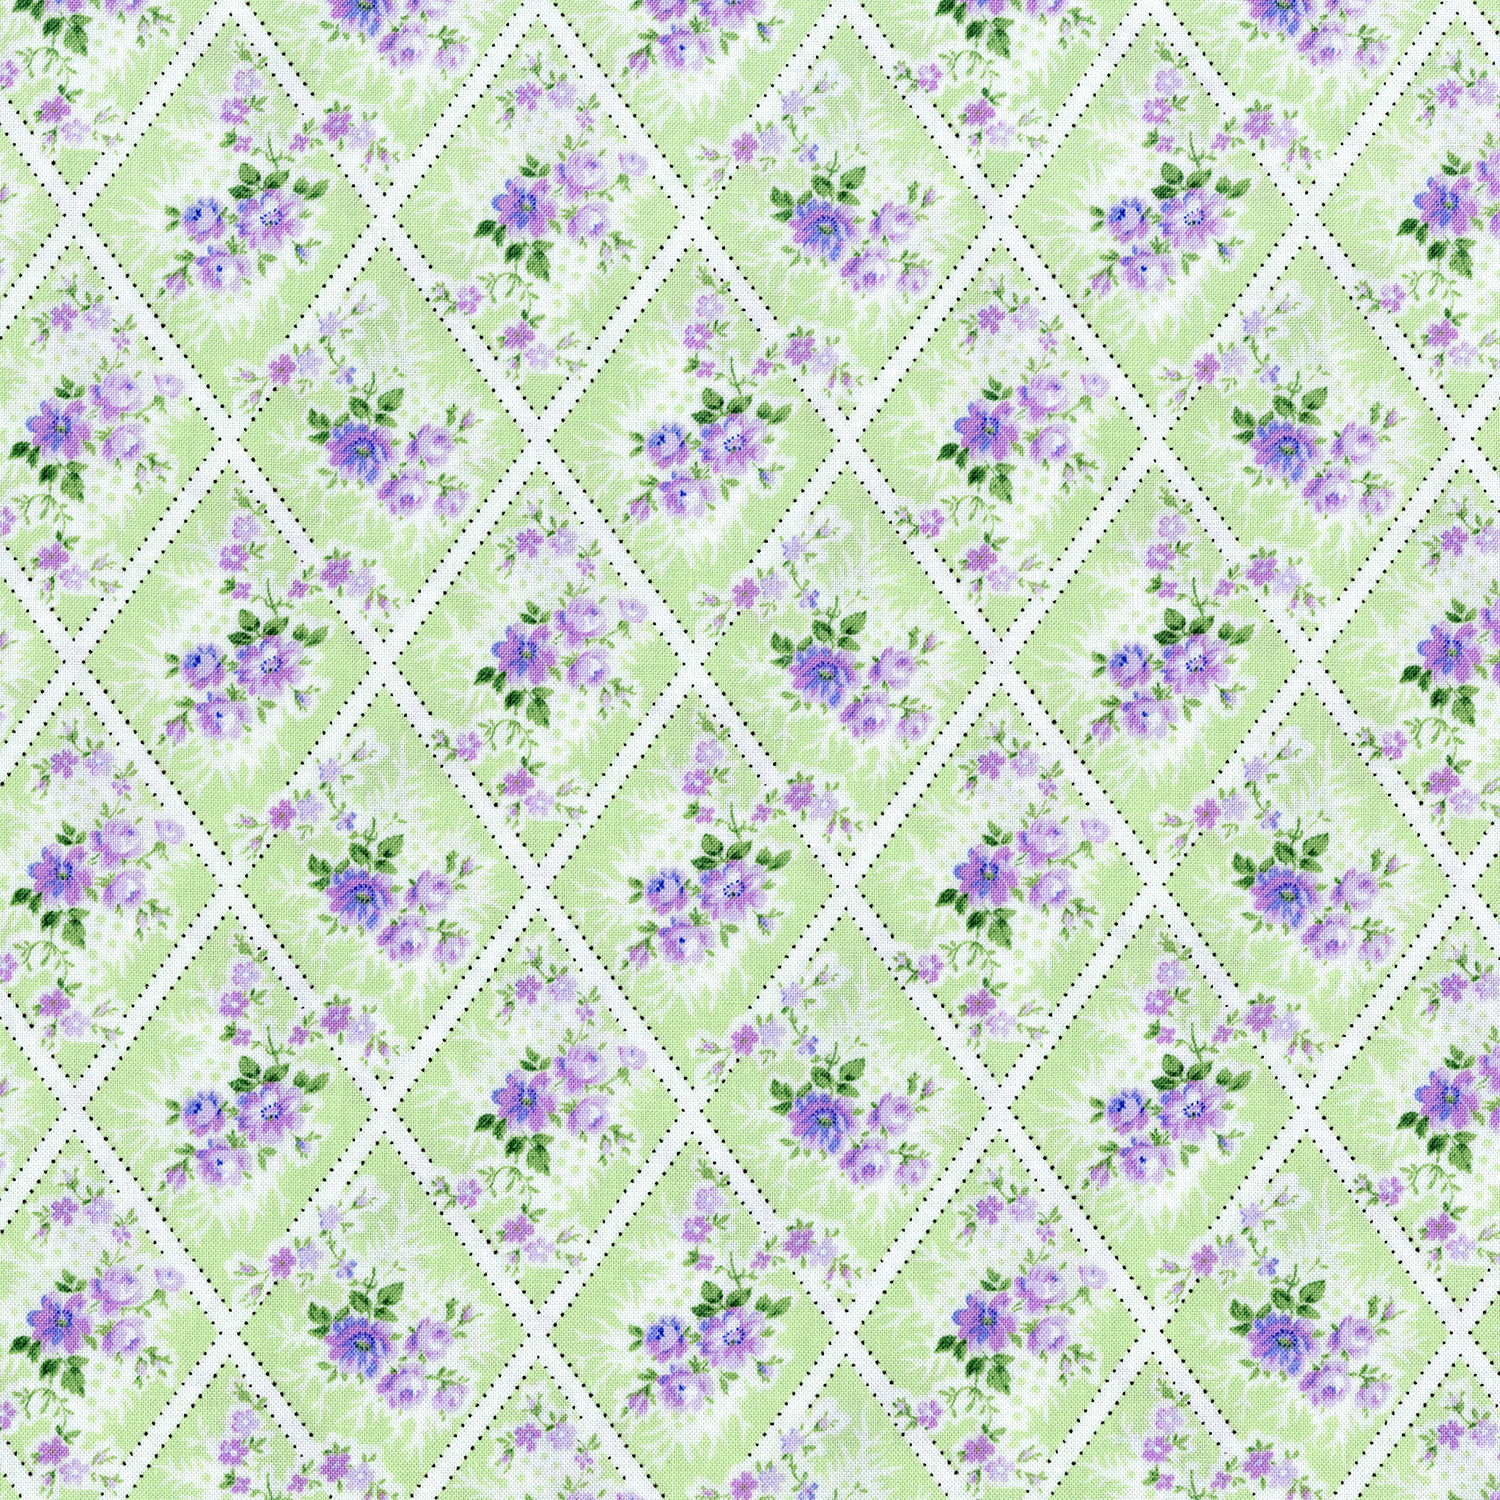 3147-001  MINIATURE BOUQUET-  LAVENDER